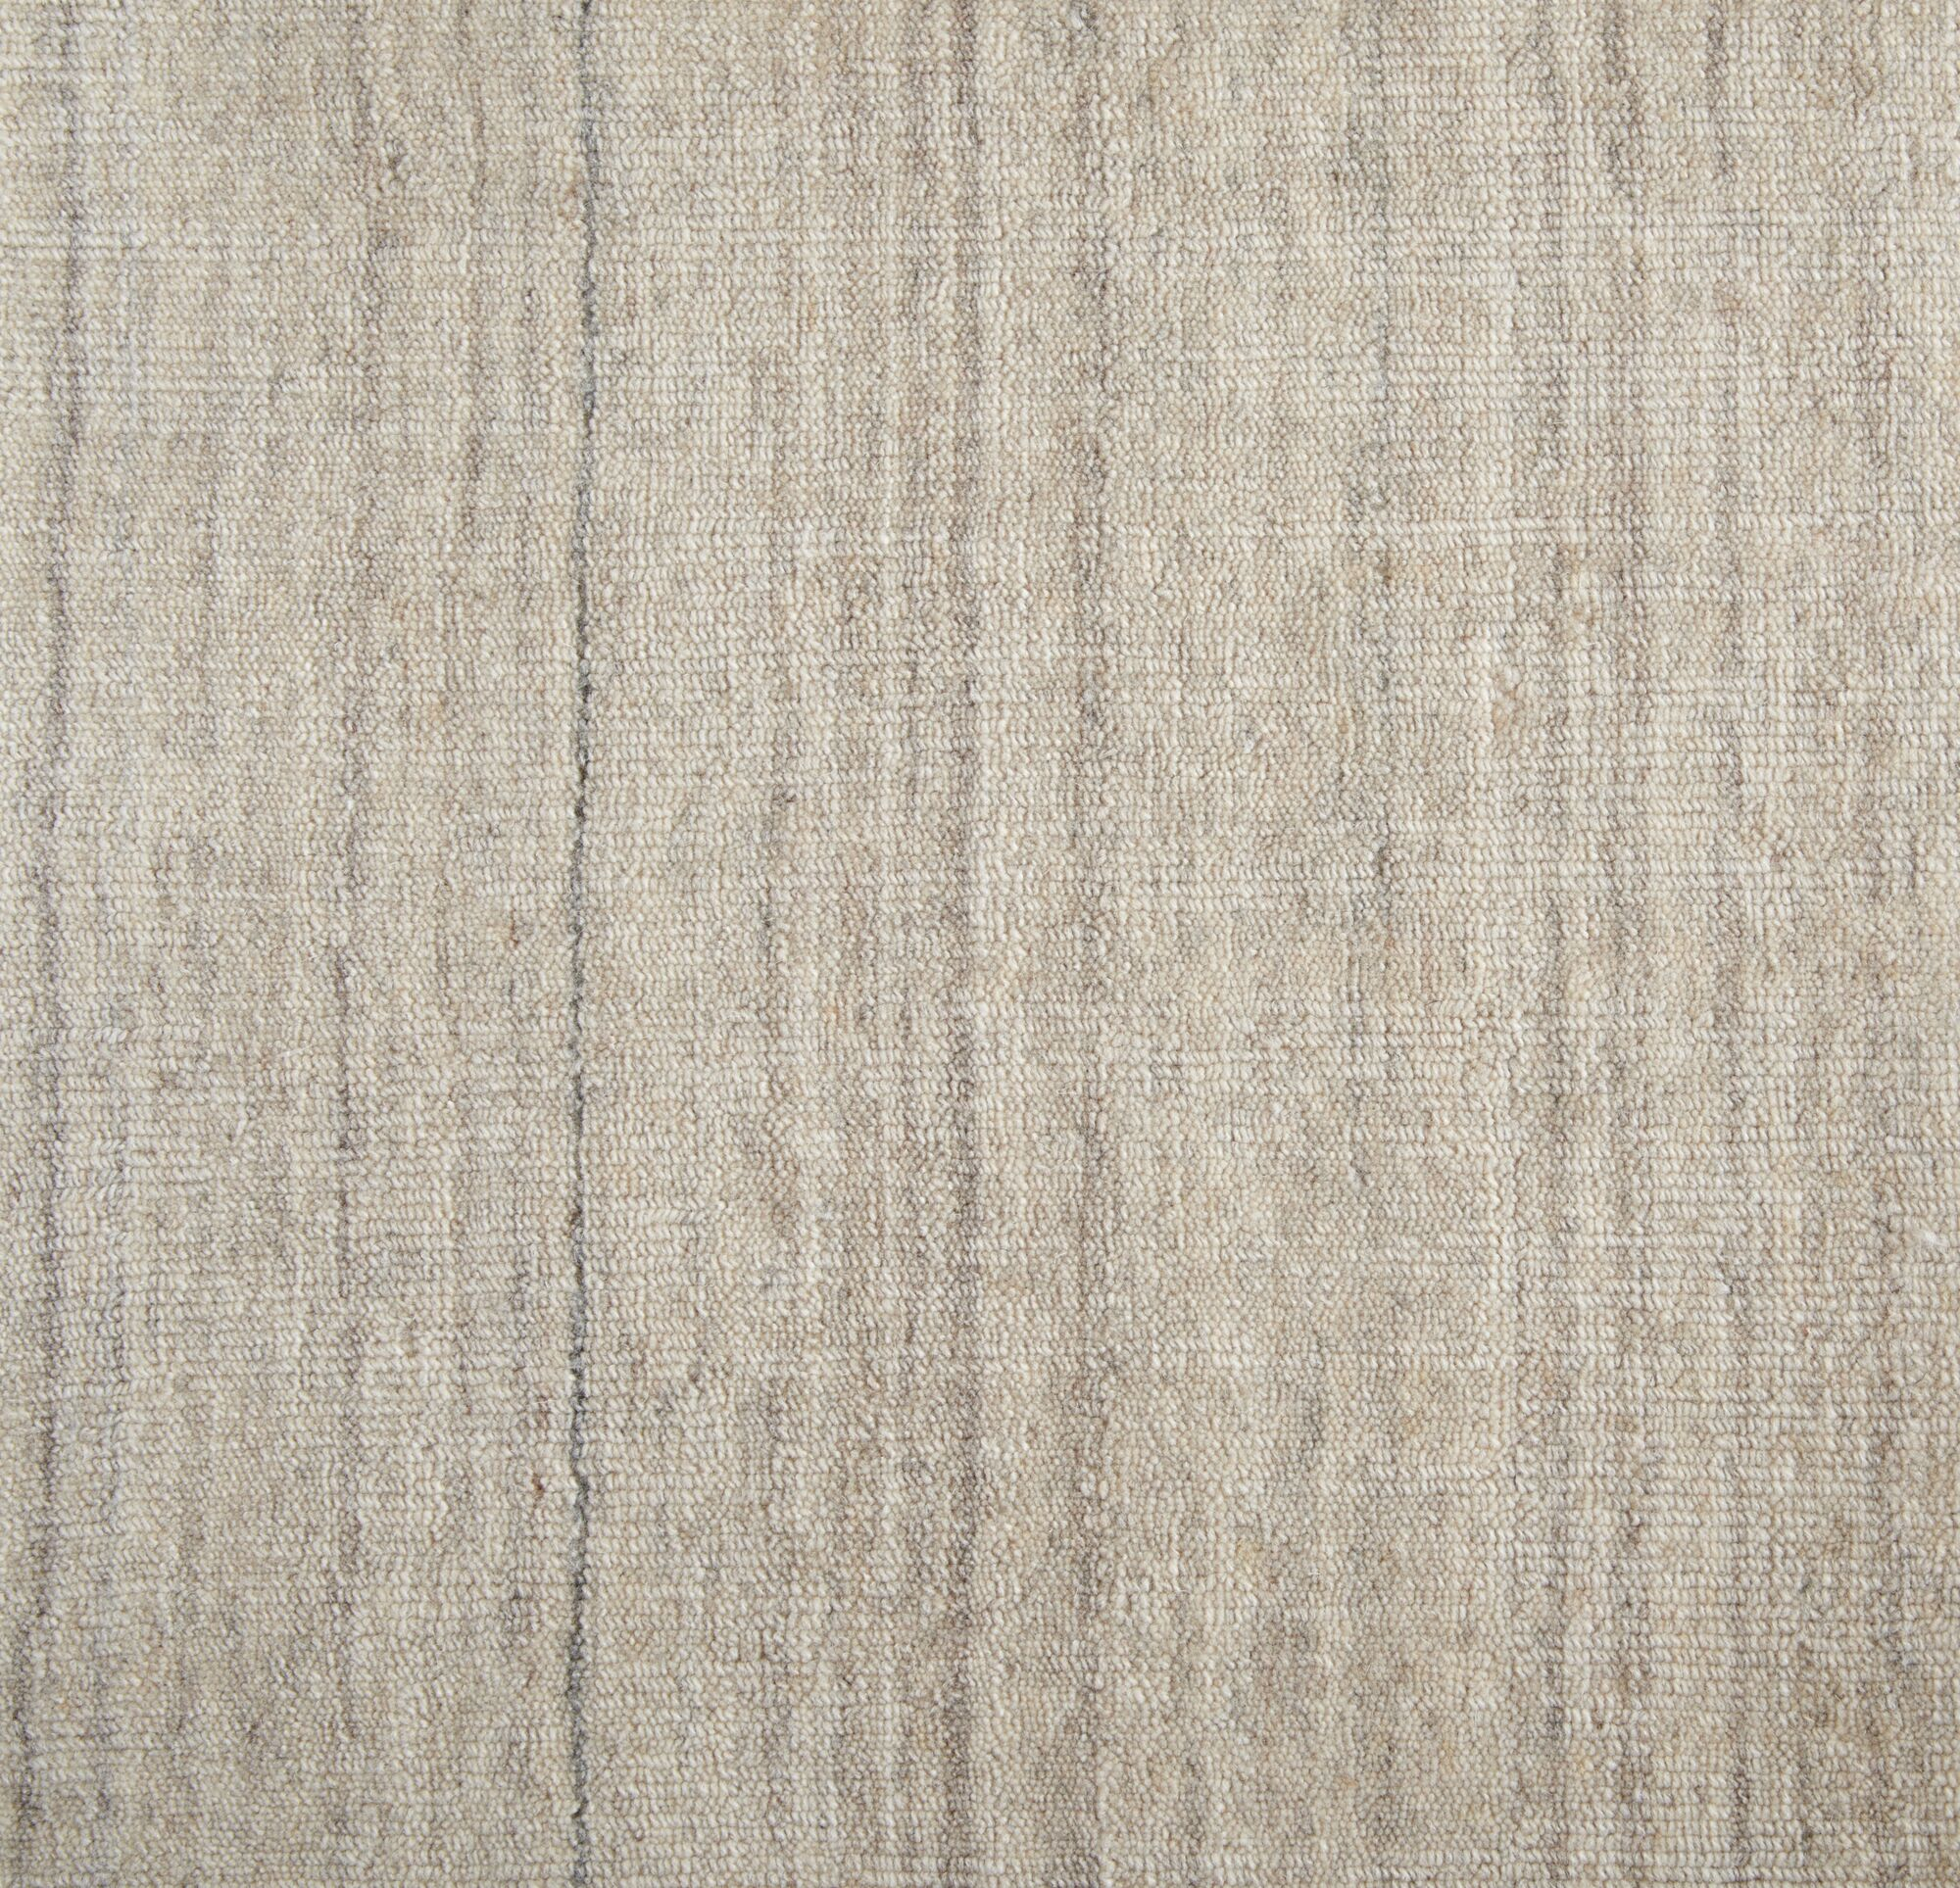 Cumberland Hand-Woven Wool Platinum Area Rug Size: Rectangle 10' x 14'